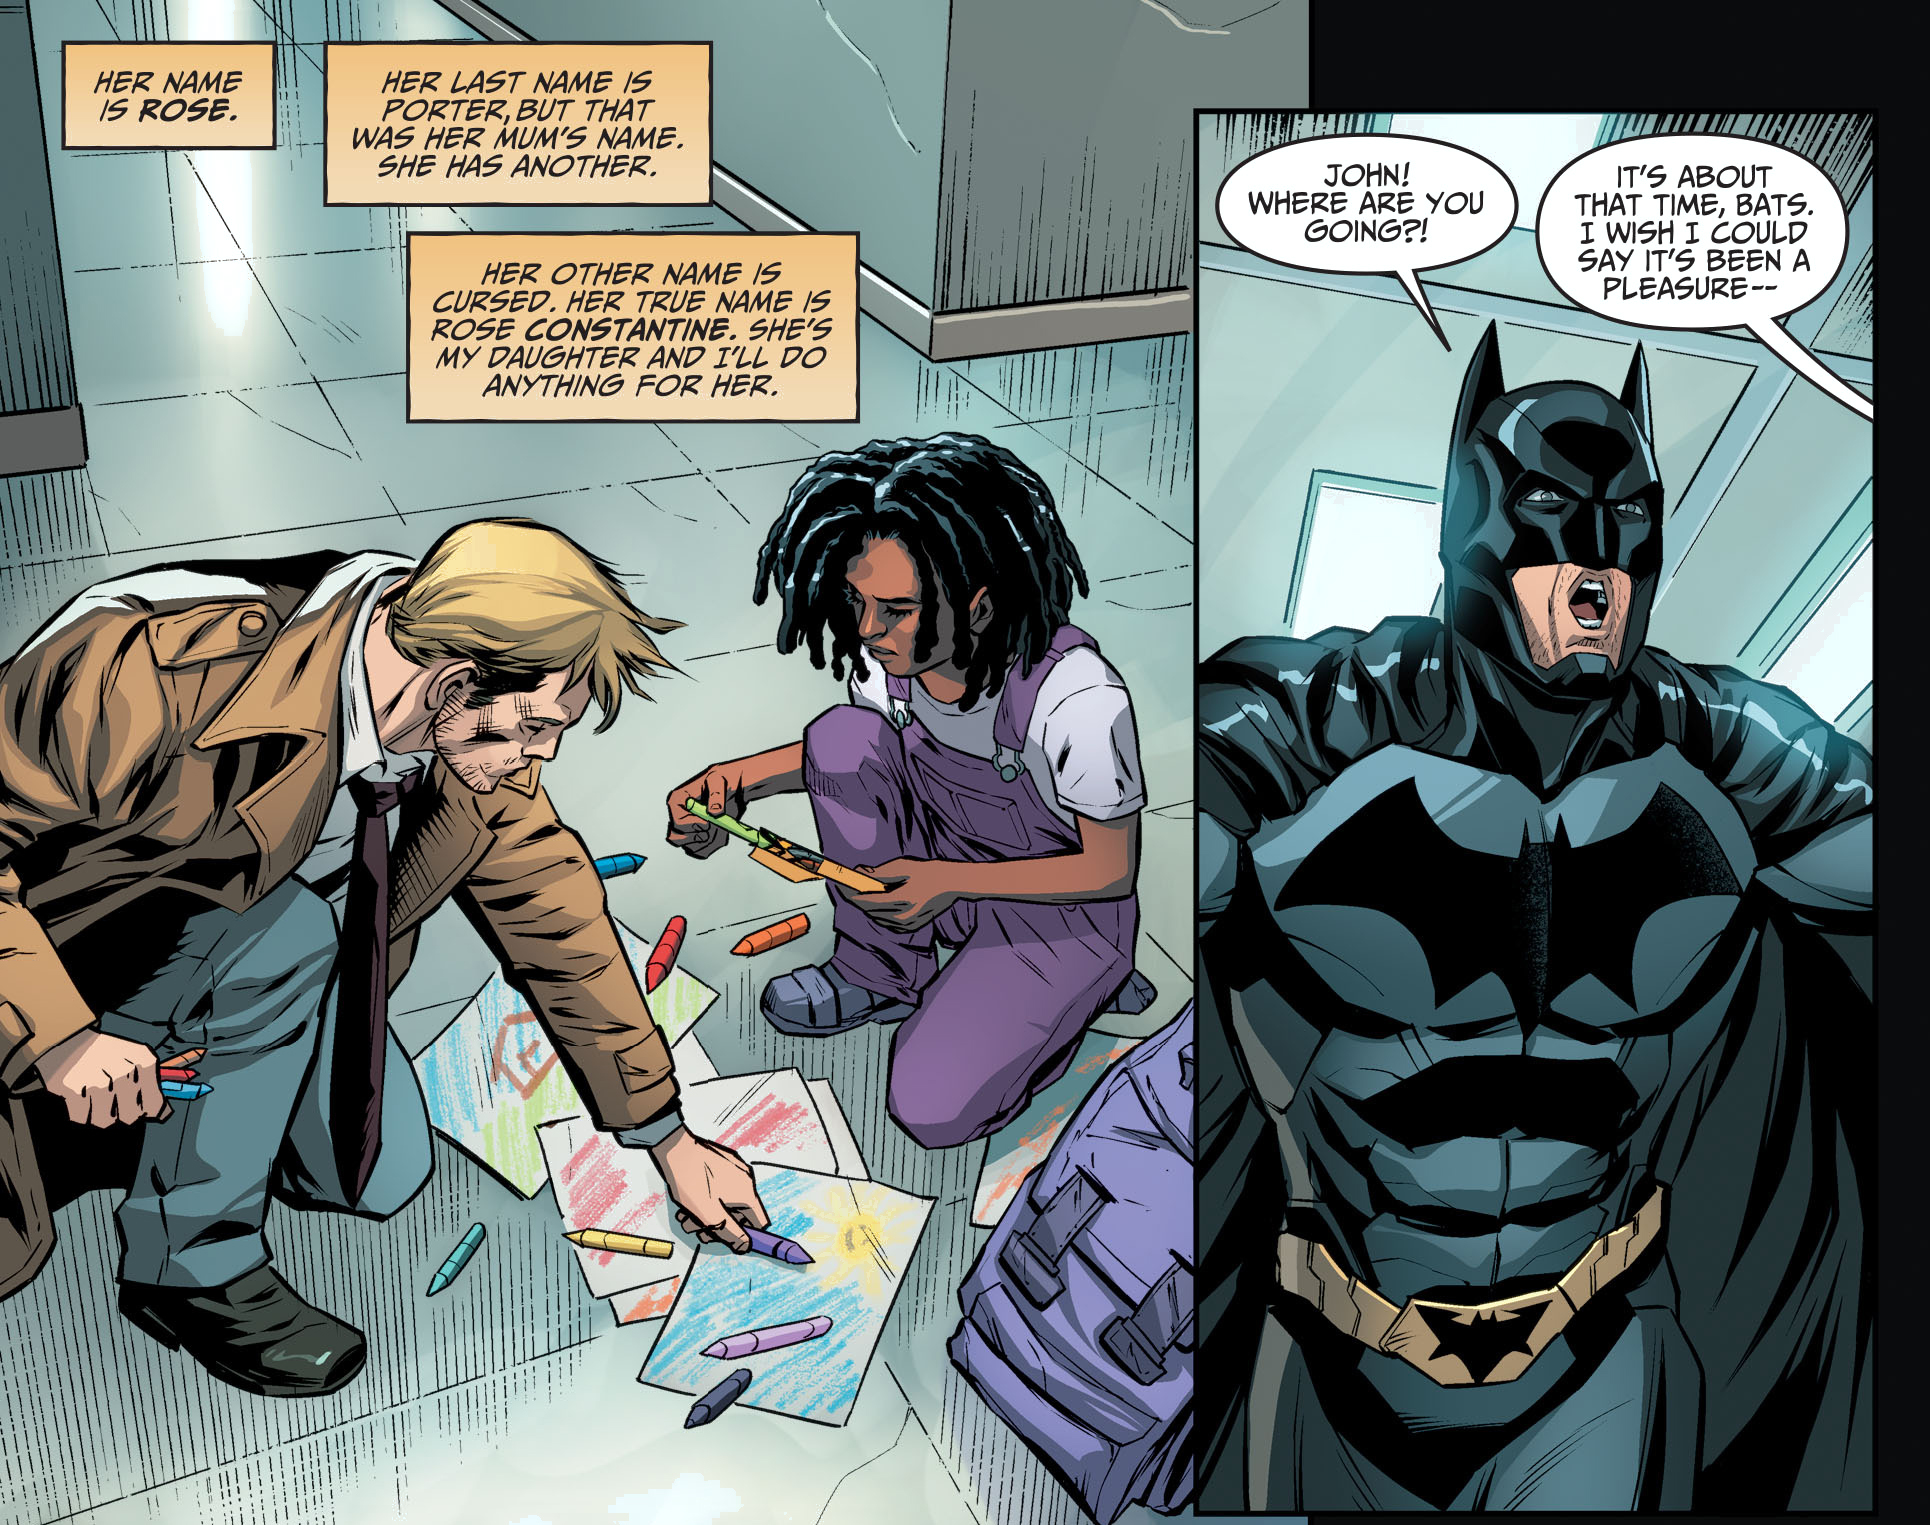 batman and john constantine, batman and john constantine comic, batman john constantine comic, constantine, hates john constantine, john constantine, john constantine comic, Justice League, Justice League constantine, Justice League Dark, Justice League john constantine,